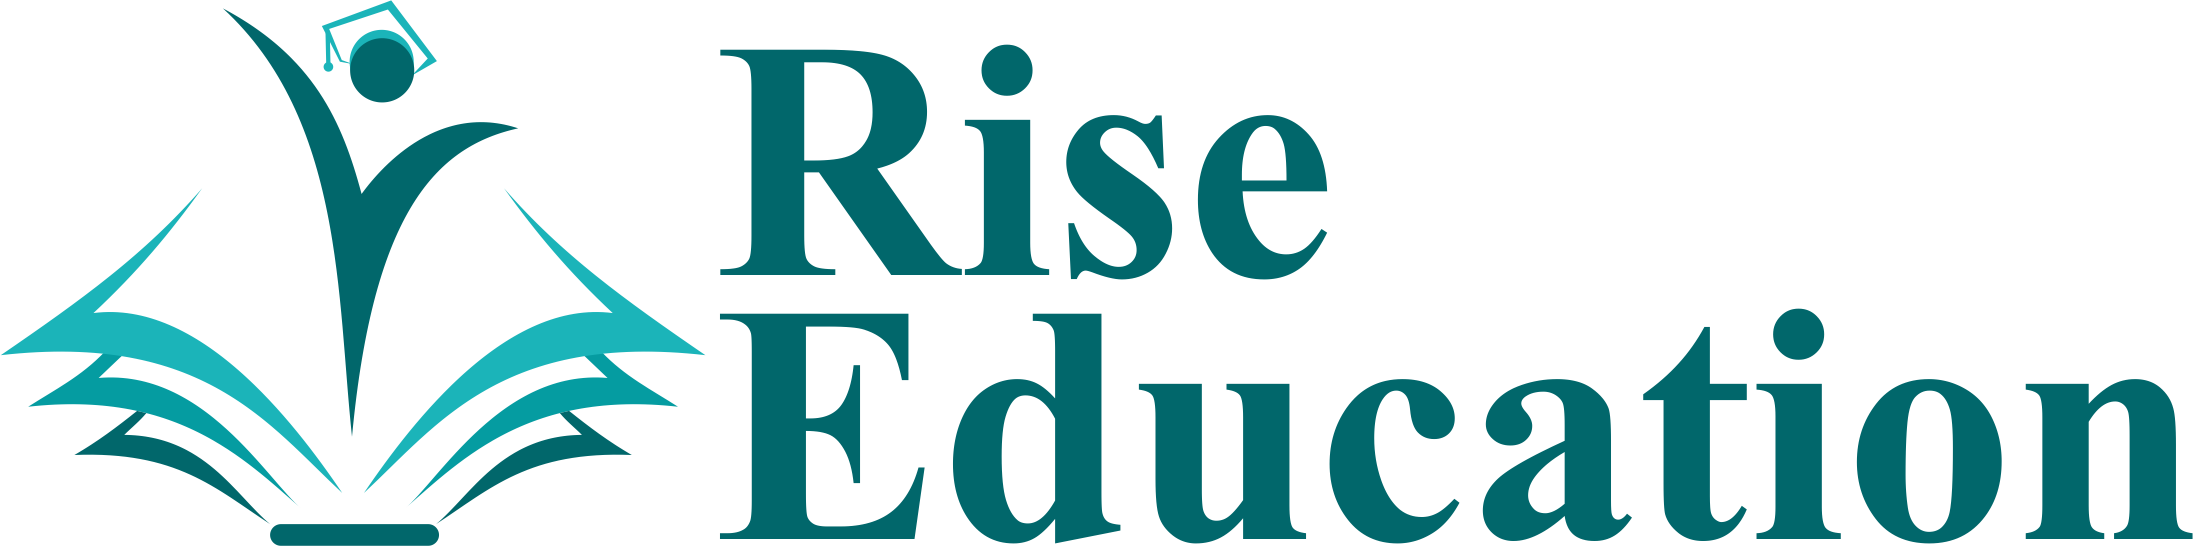 Rise Education